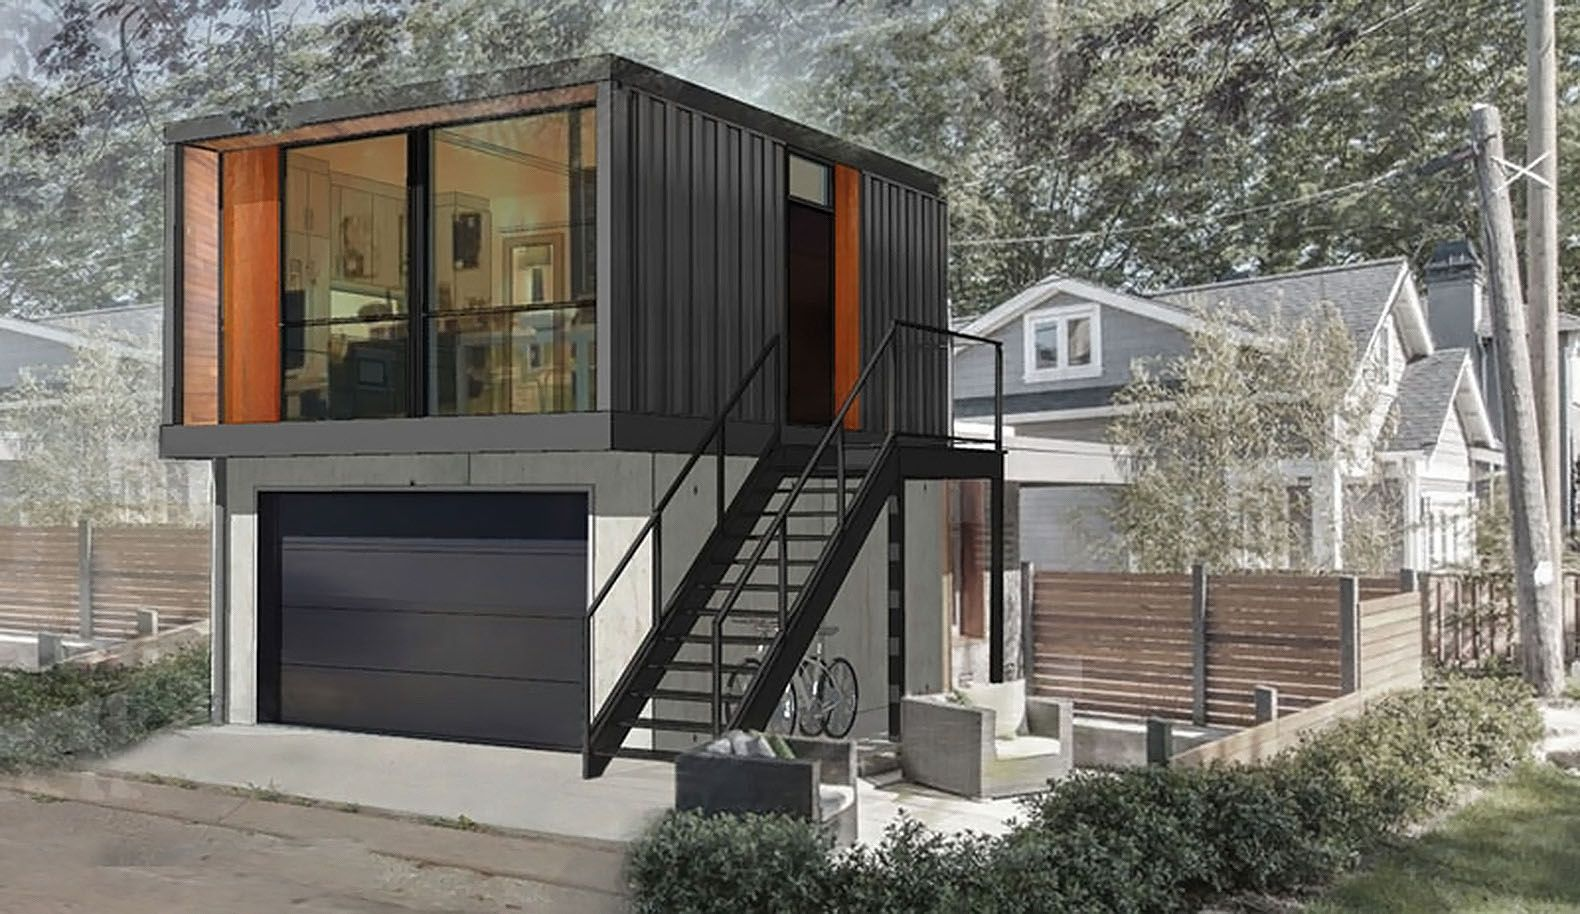 Honomobo Prefab Homes shipping containers prefab houses